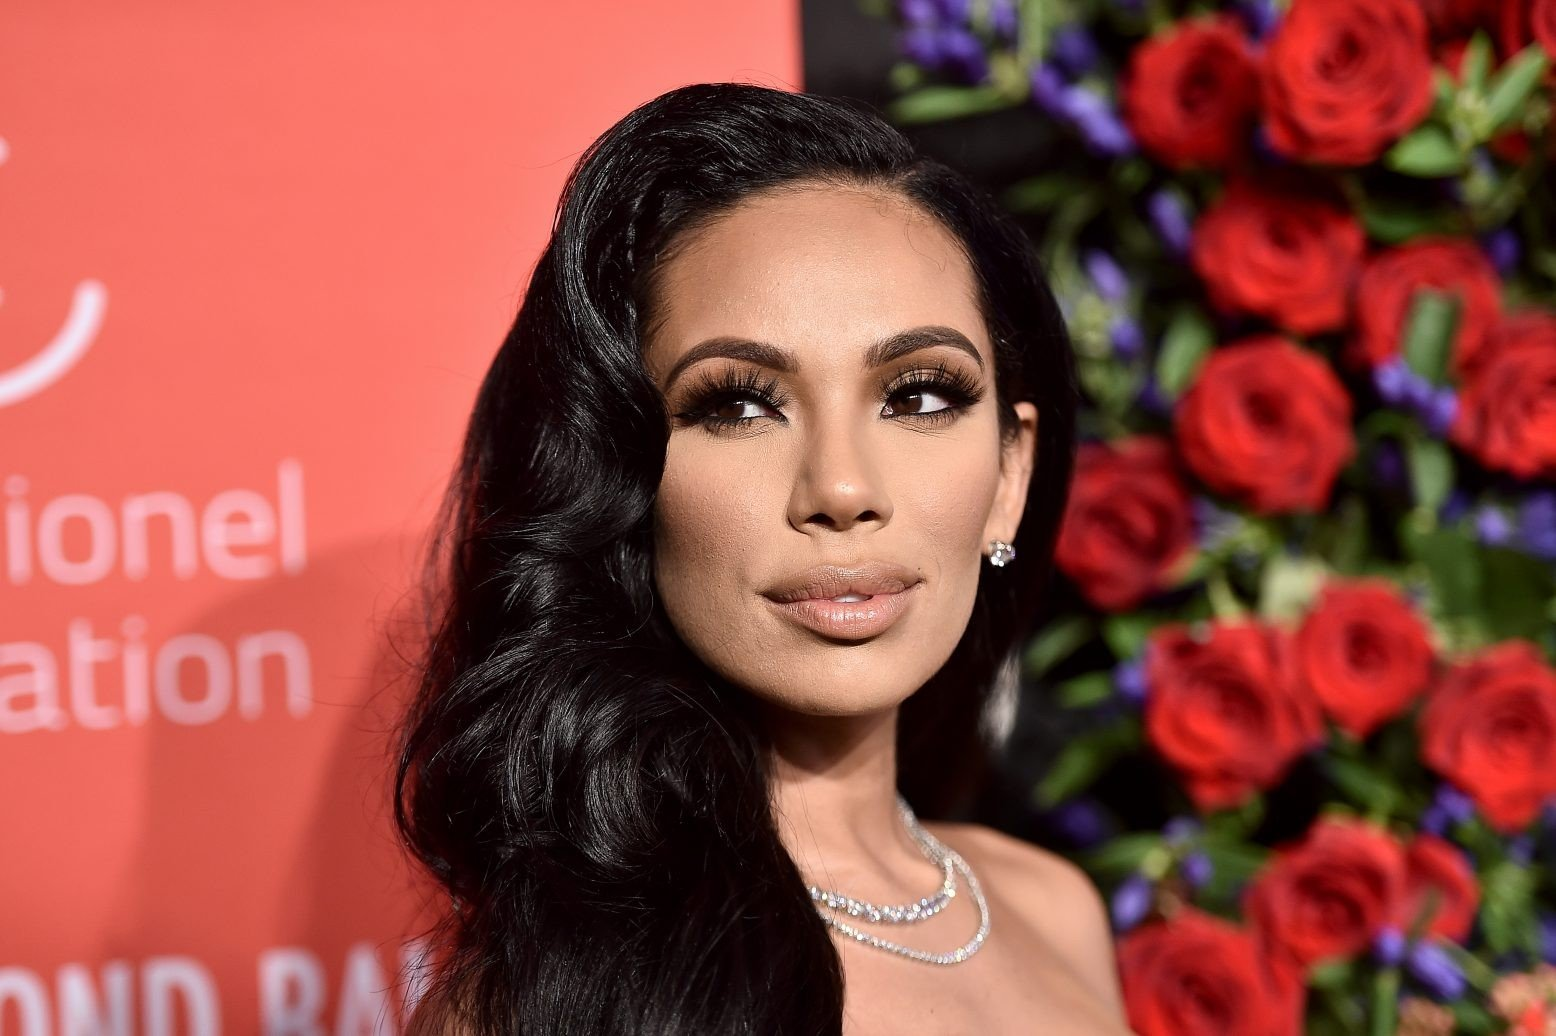 Erica Mena Flaunts Her Curves In This Skintight Outfit – See Her Rocking A New Look Here